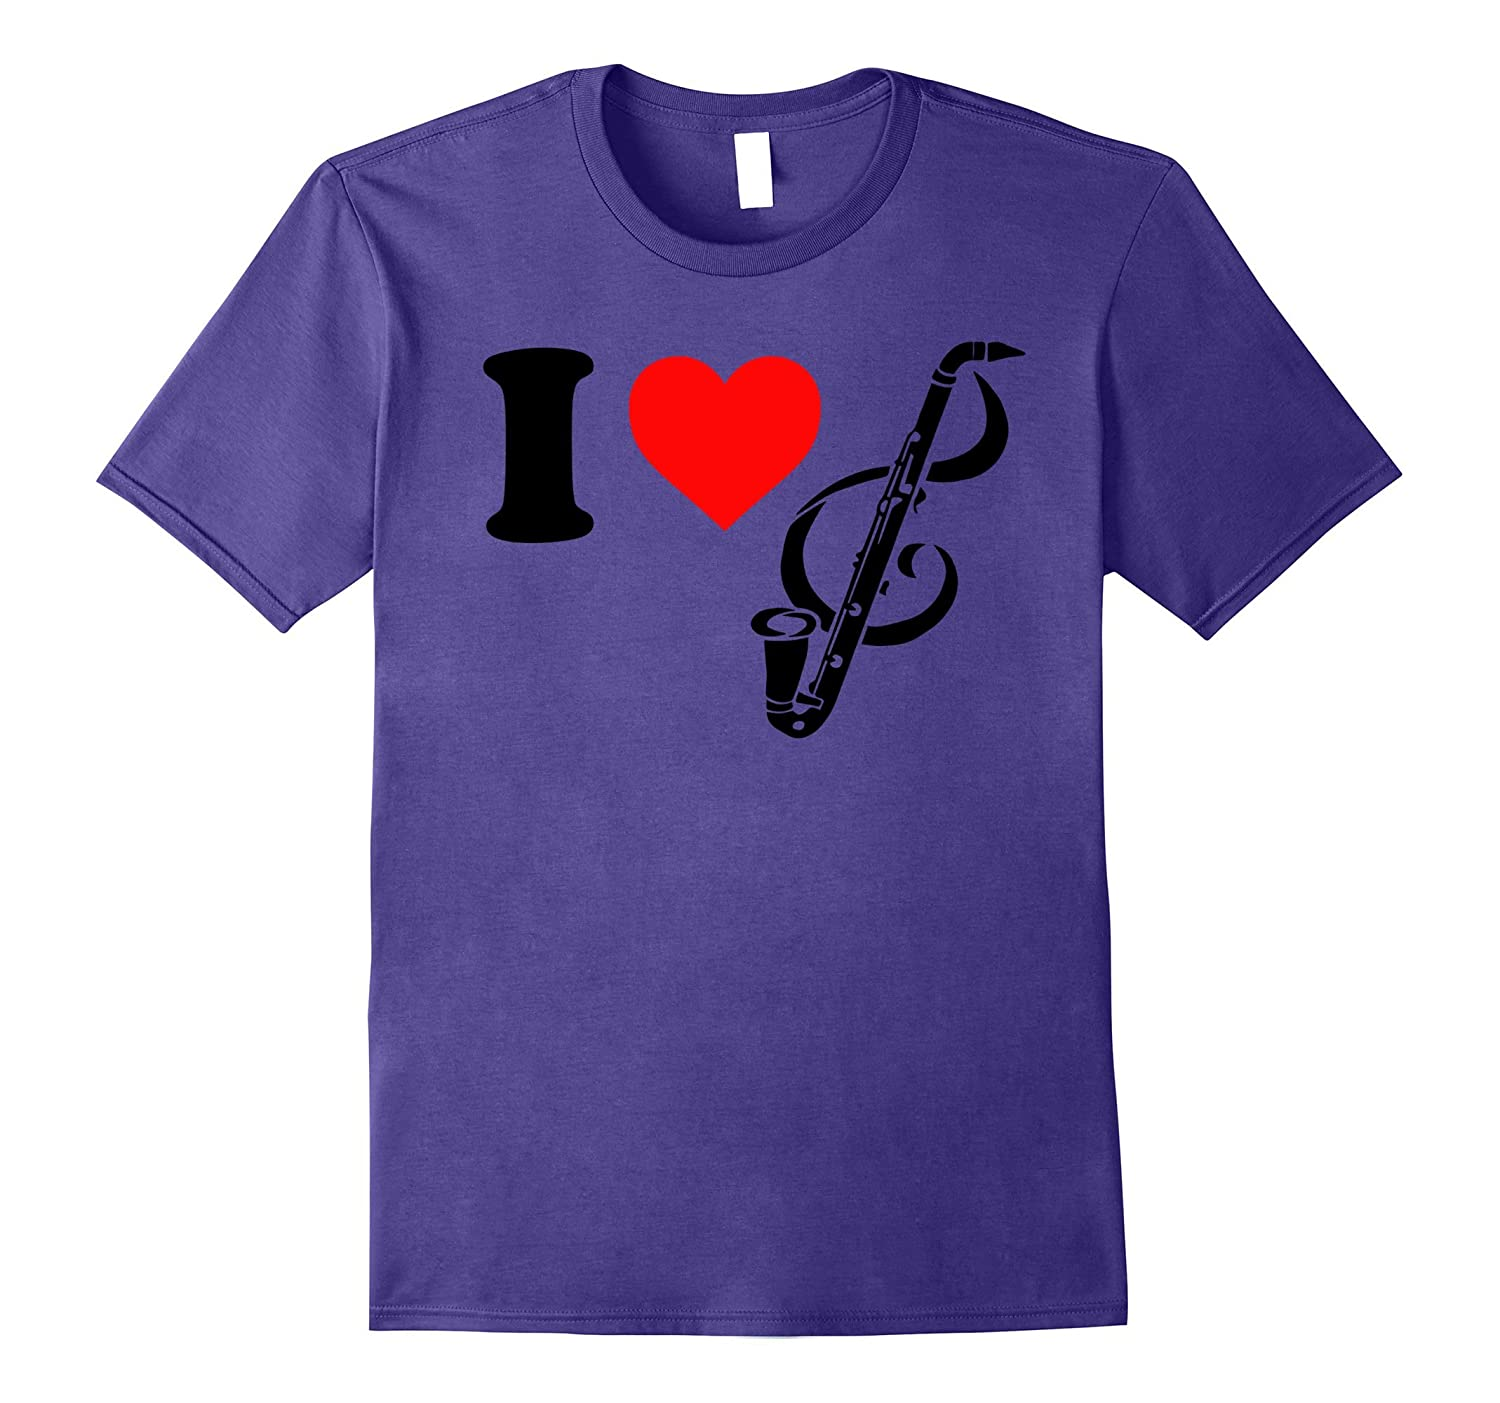 I love heart bass clarinet t-shirt men, women, kid's-BN